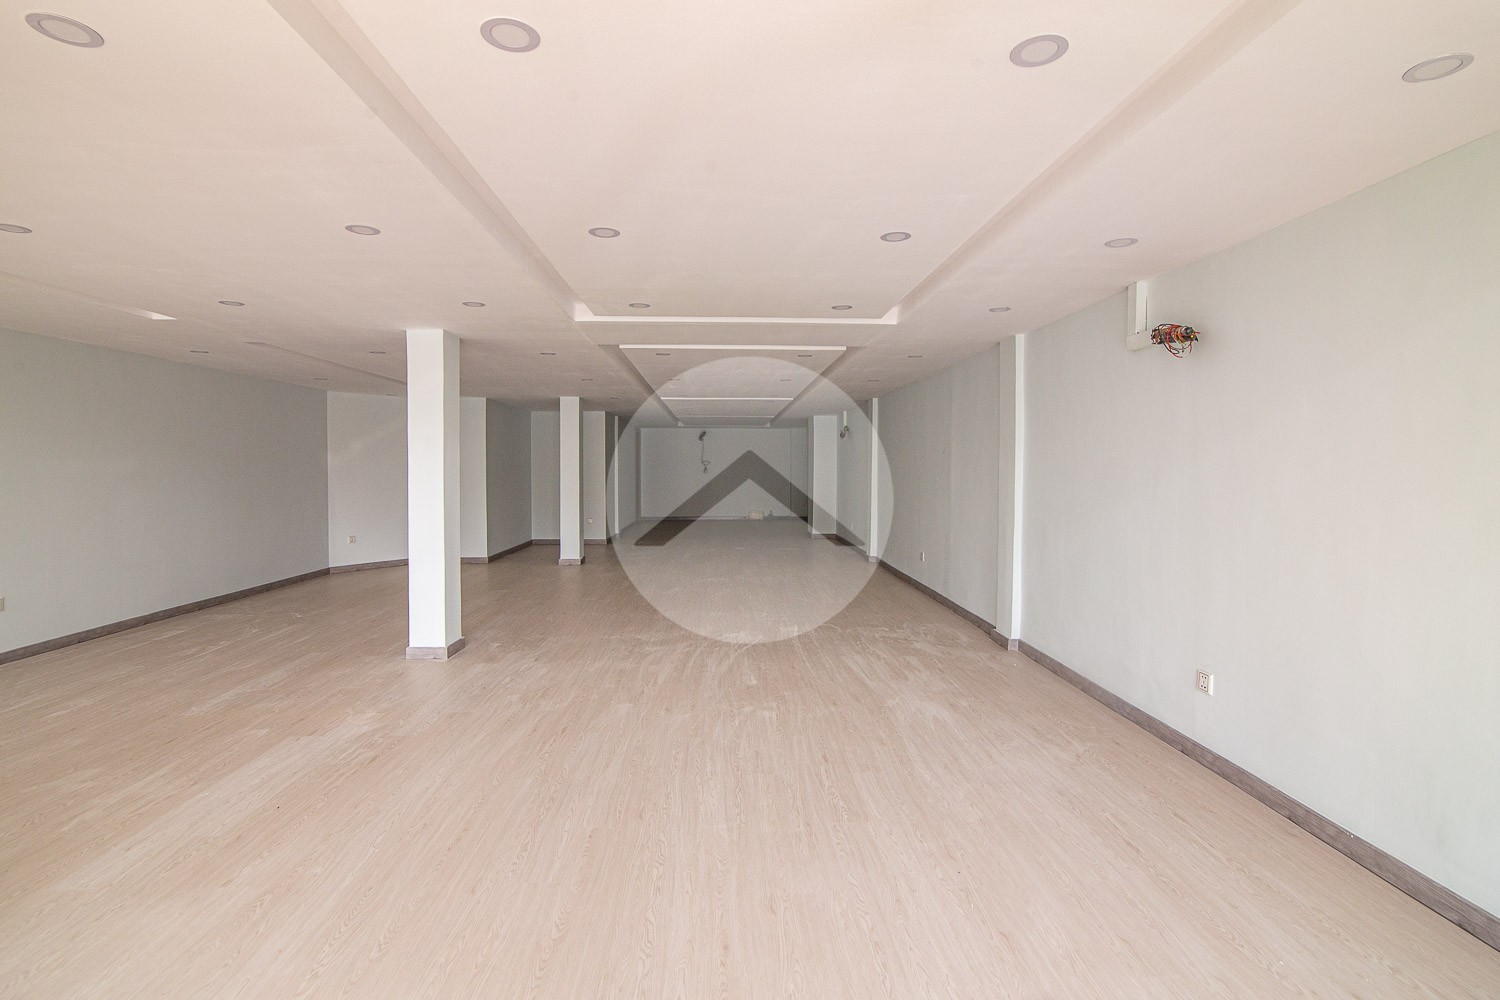 250 Sqm Commercial Building For Rent - Chamkarmorn, Phnom Penh